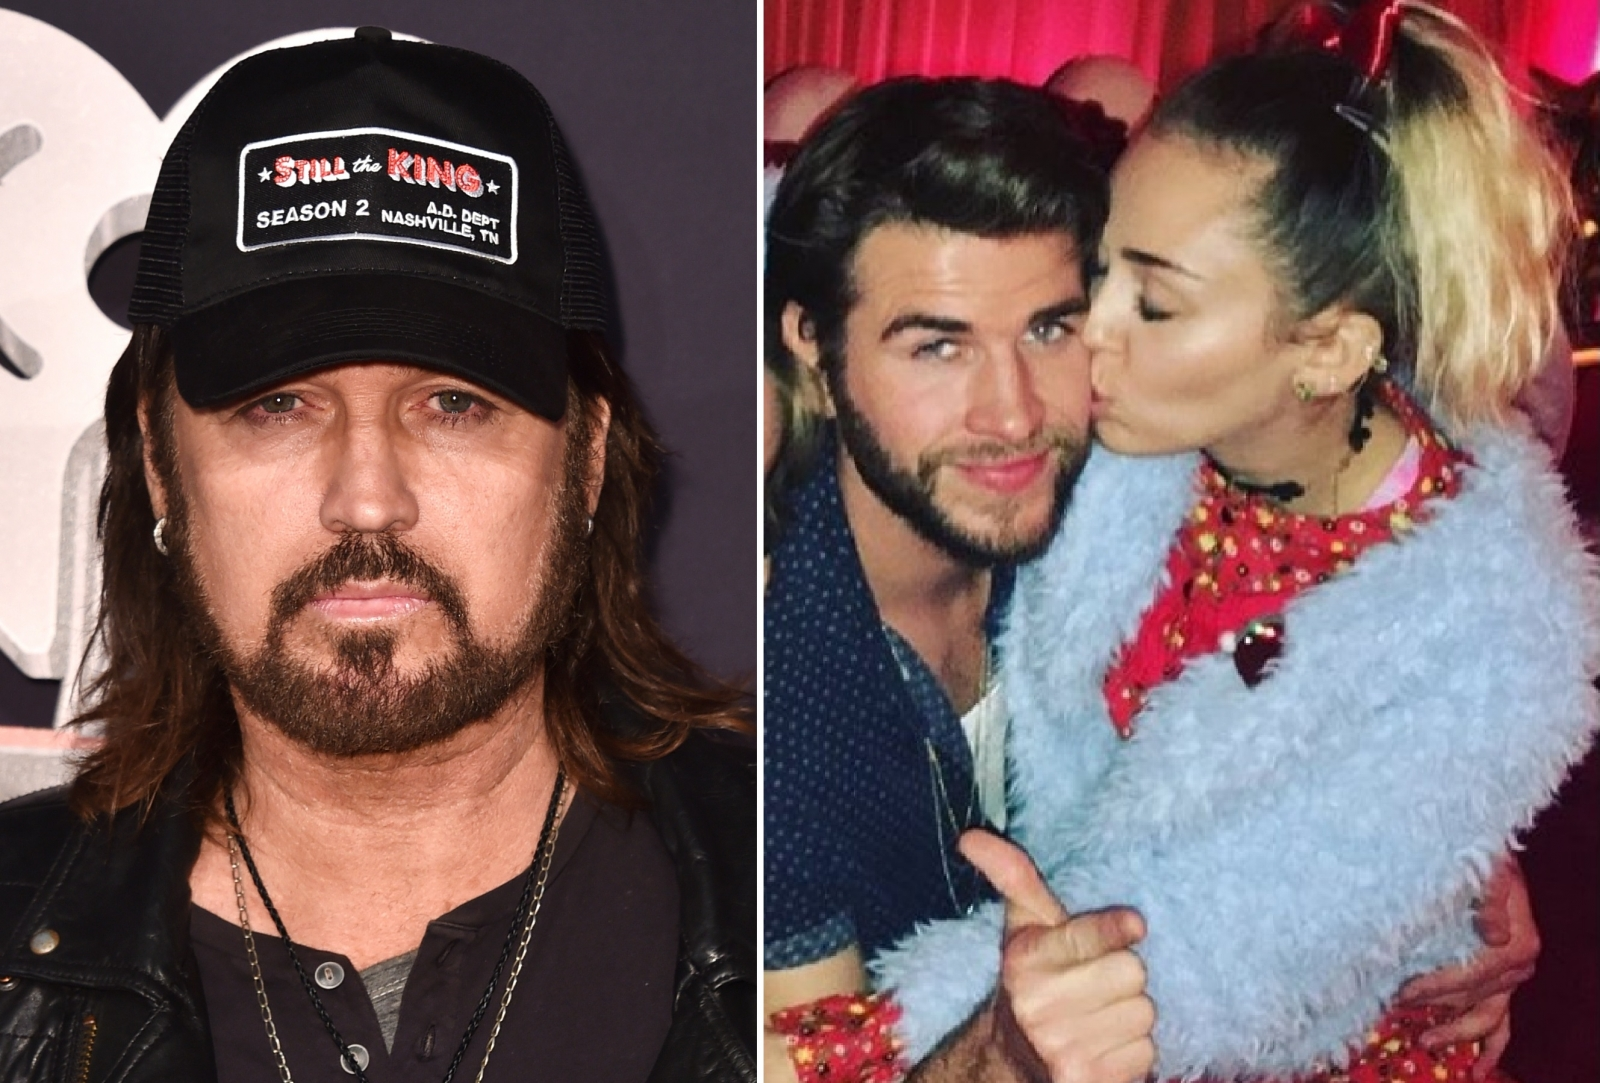 Billy Ray Cyrus Miley Cyrus Liam Hemsworth